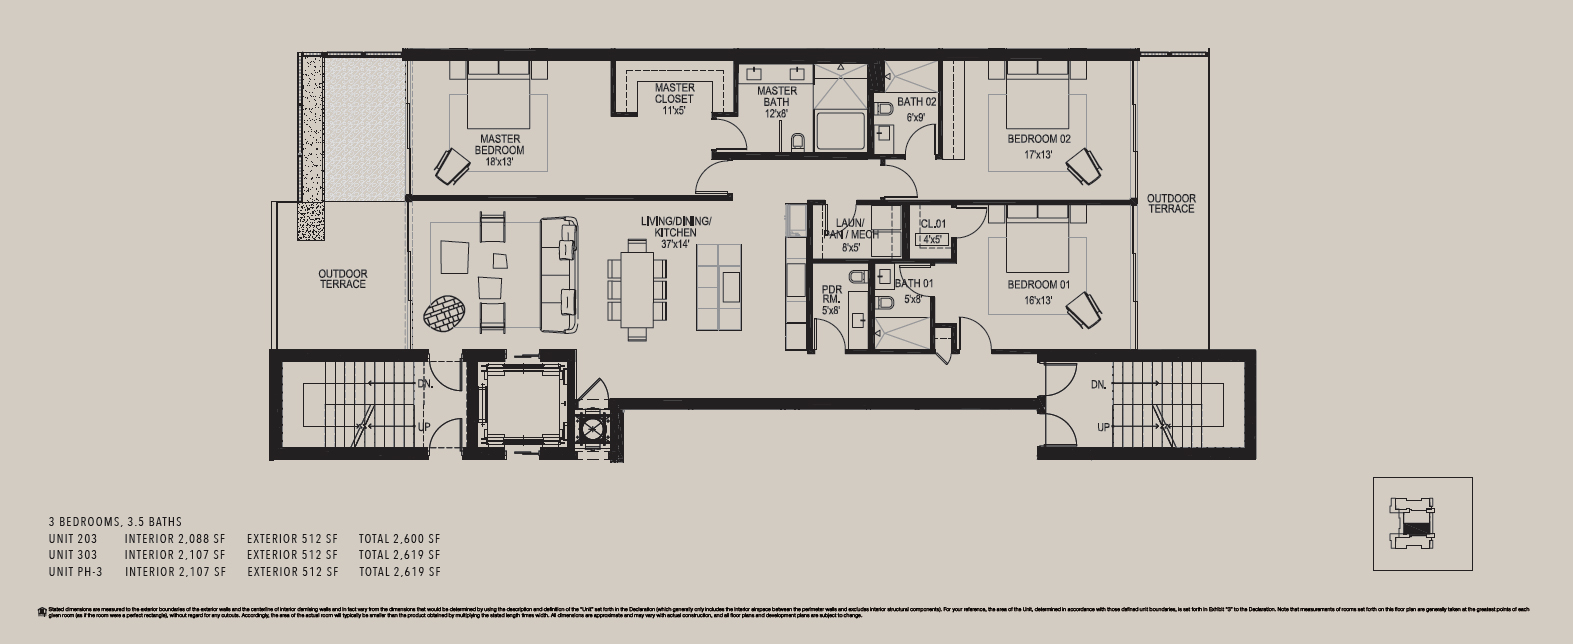 Louvre house floor plans miami beach florida for Miami house plans